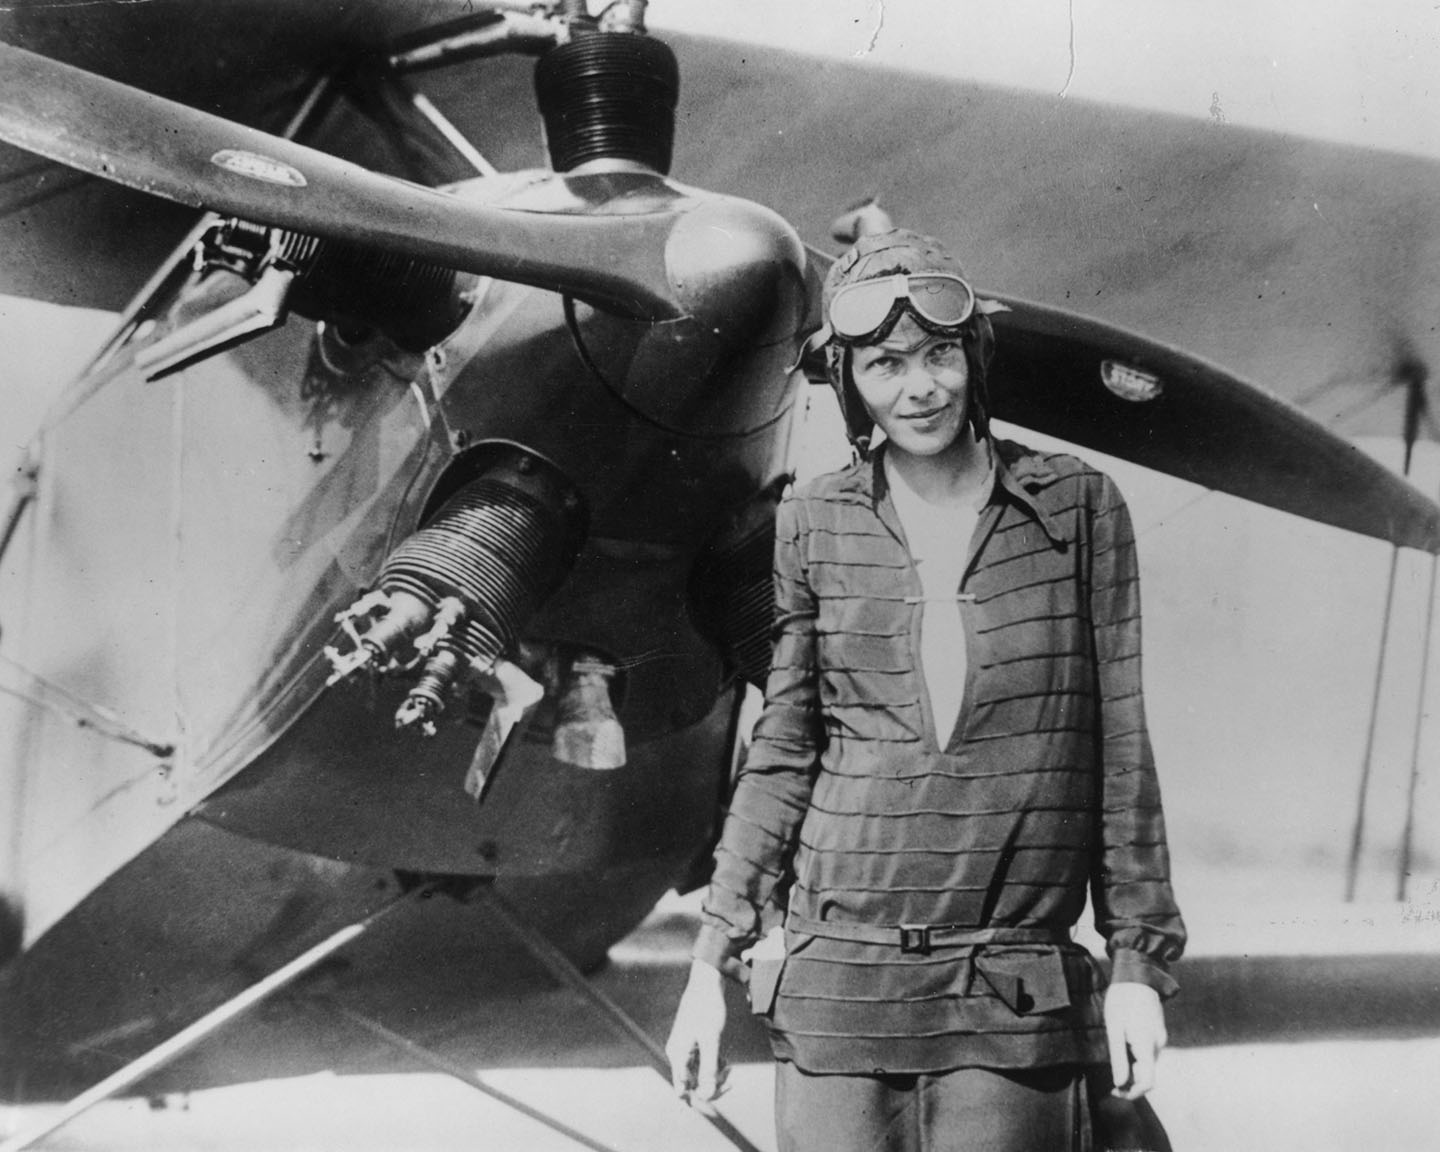 """Amelia Earhart stands June 14, 1928 in front of her bi-plane called """"Friendship"""" in Newfoundland. Earhart (1898 - 1937) disappeared without trace over the Pacific Ocean in her attempt to fly around the world in 1937."""